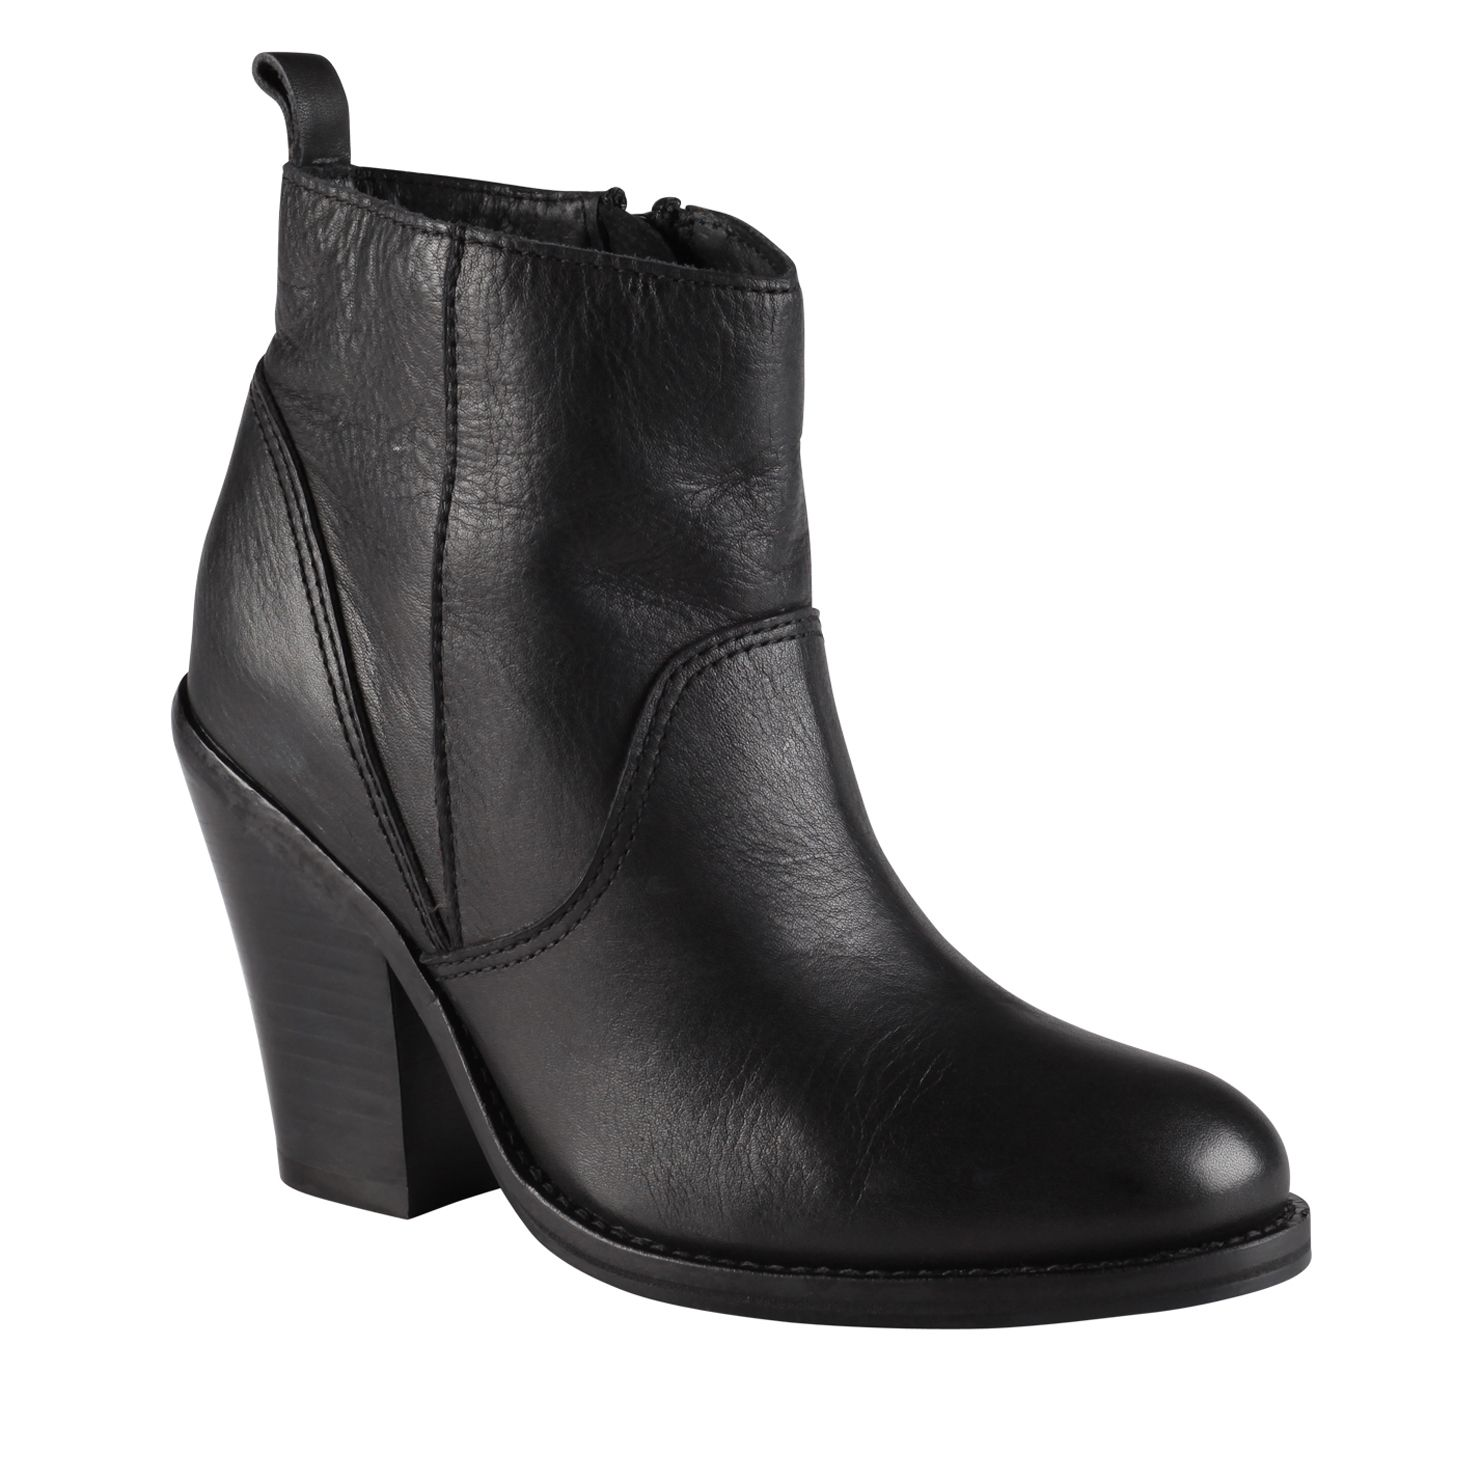 Giambrone almond toe block heel boots